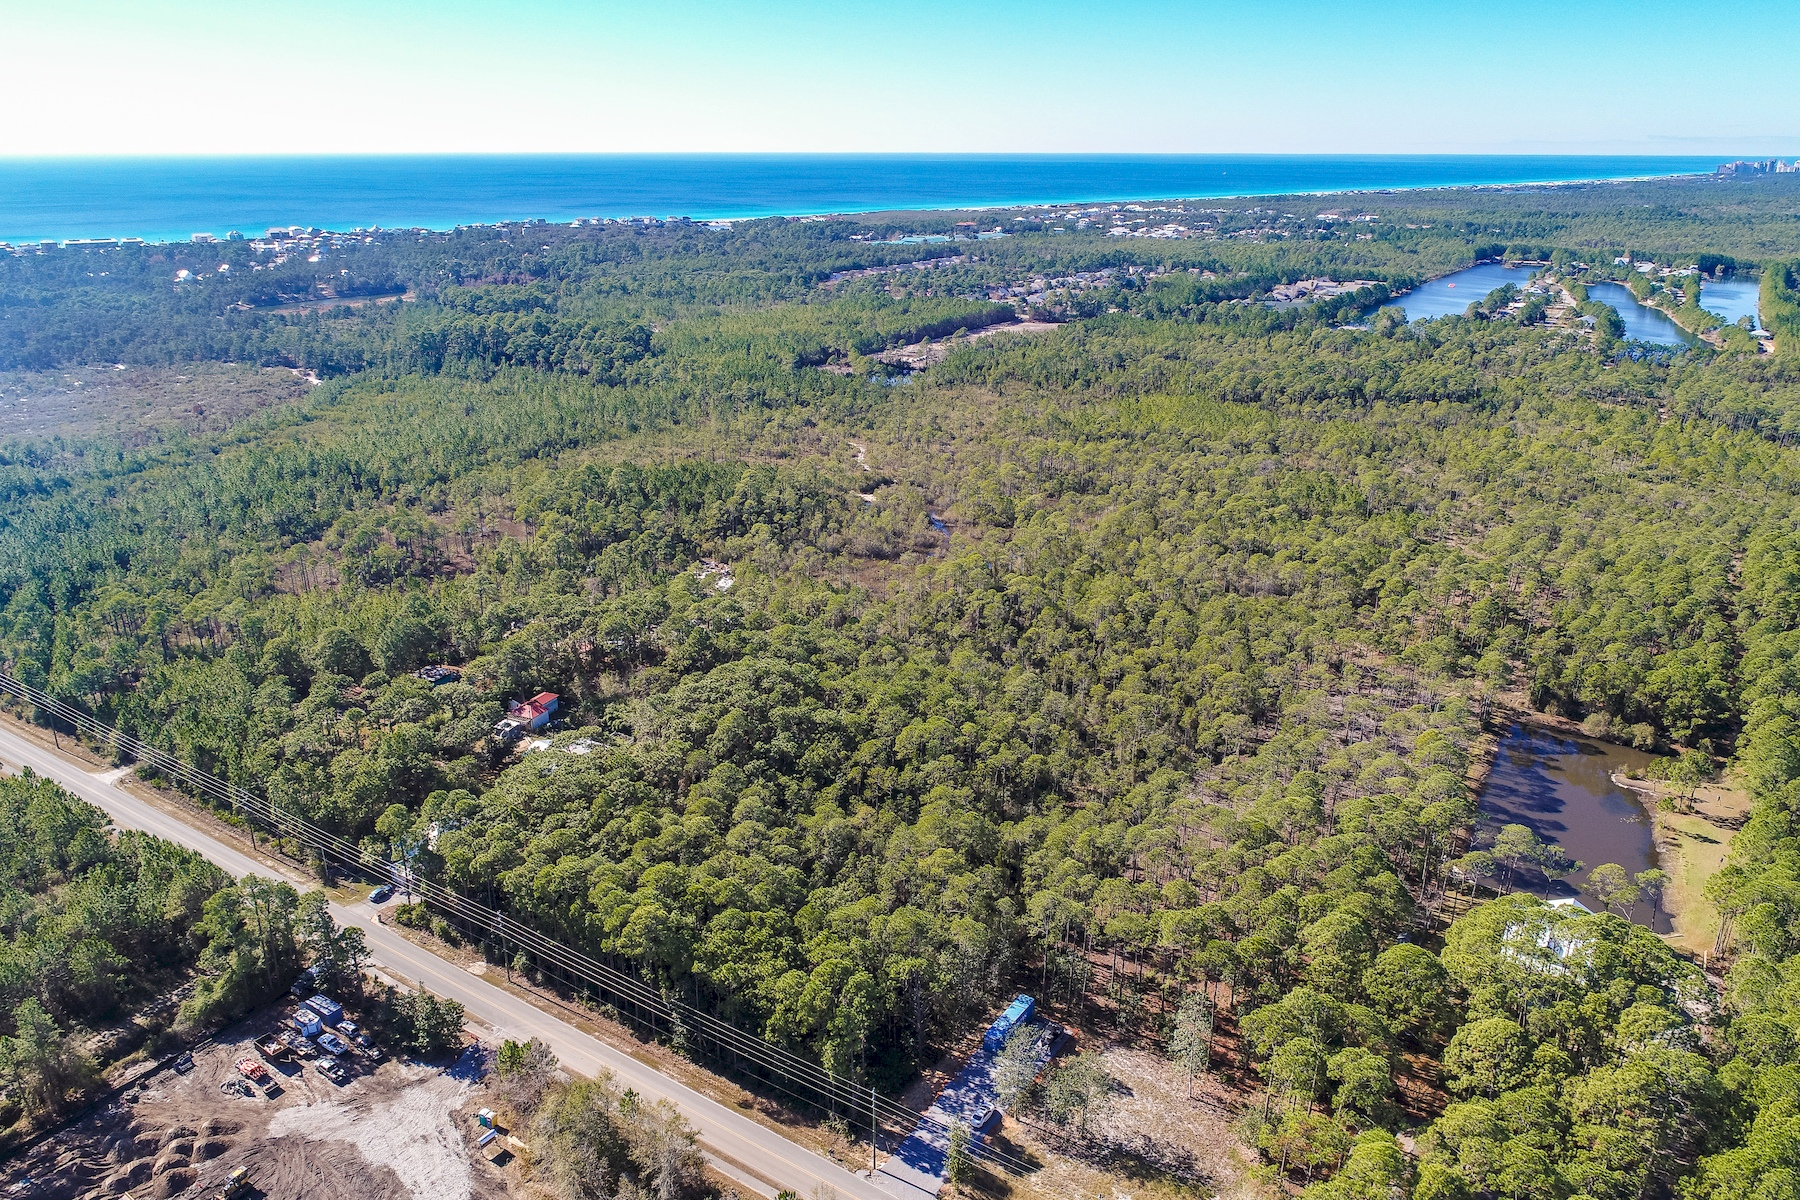 Land for Sale at Treed Acreage South of Highway 98 Near Scenic 30A TBD Thompson Road Santa Rosa Beach, Florida 32459 United States